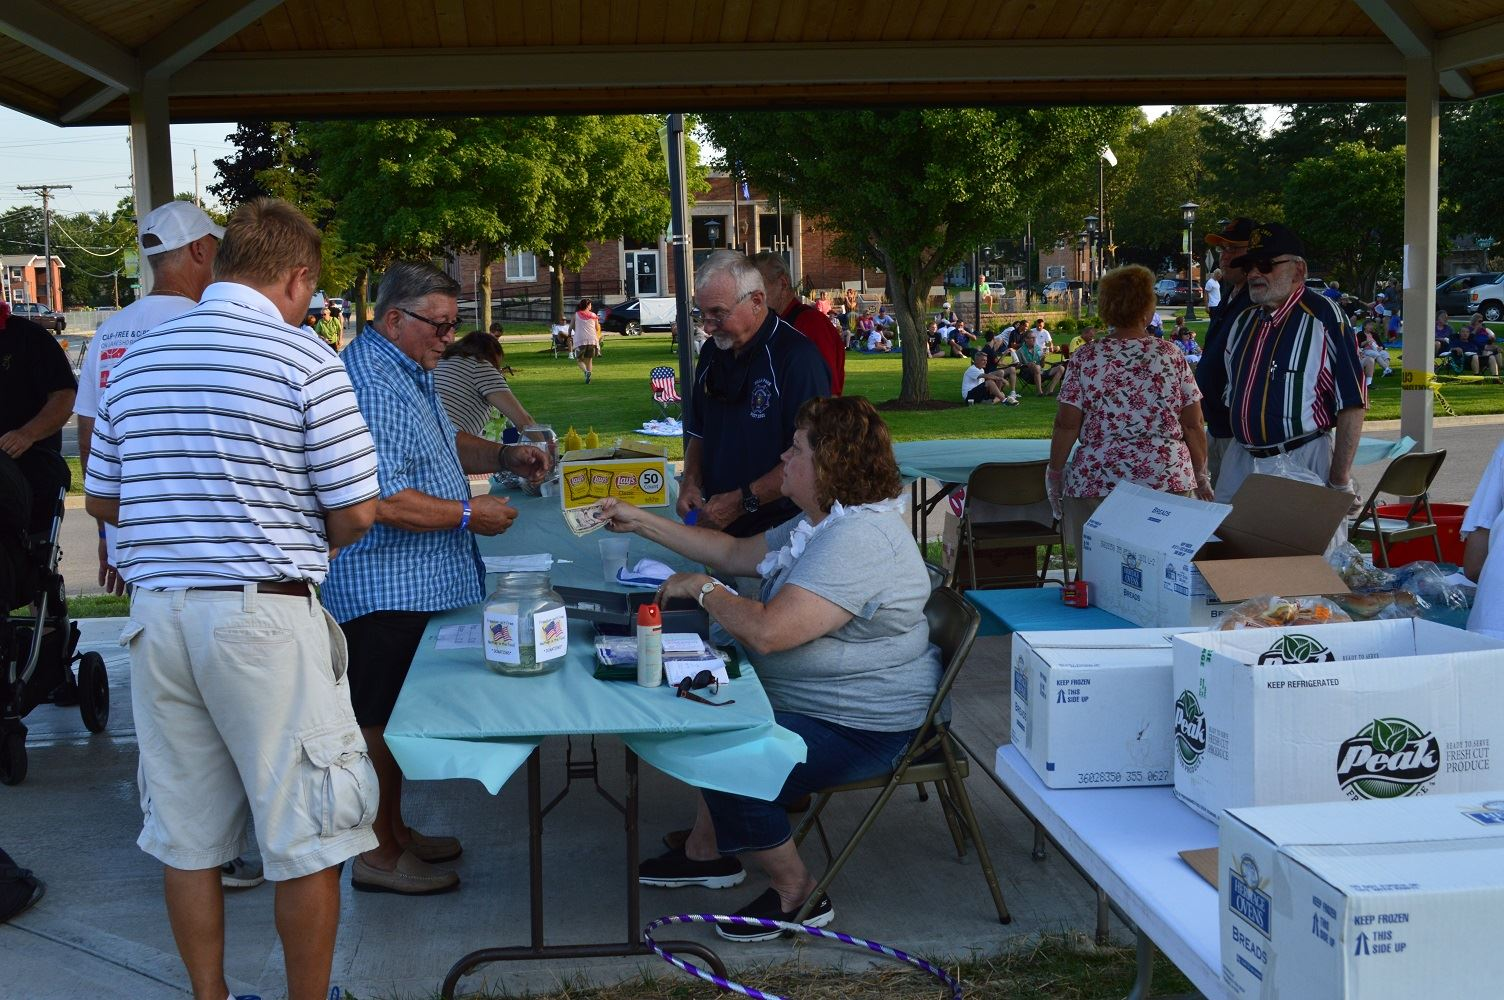 Members of the Villa Park VFW Post 2801 serve concessions at a summer concert at Cortesi Veterans Memorial Park on Aug. 4, 2016.